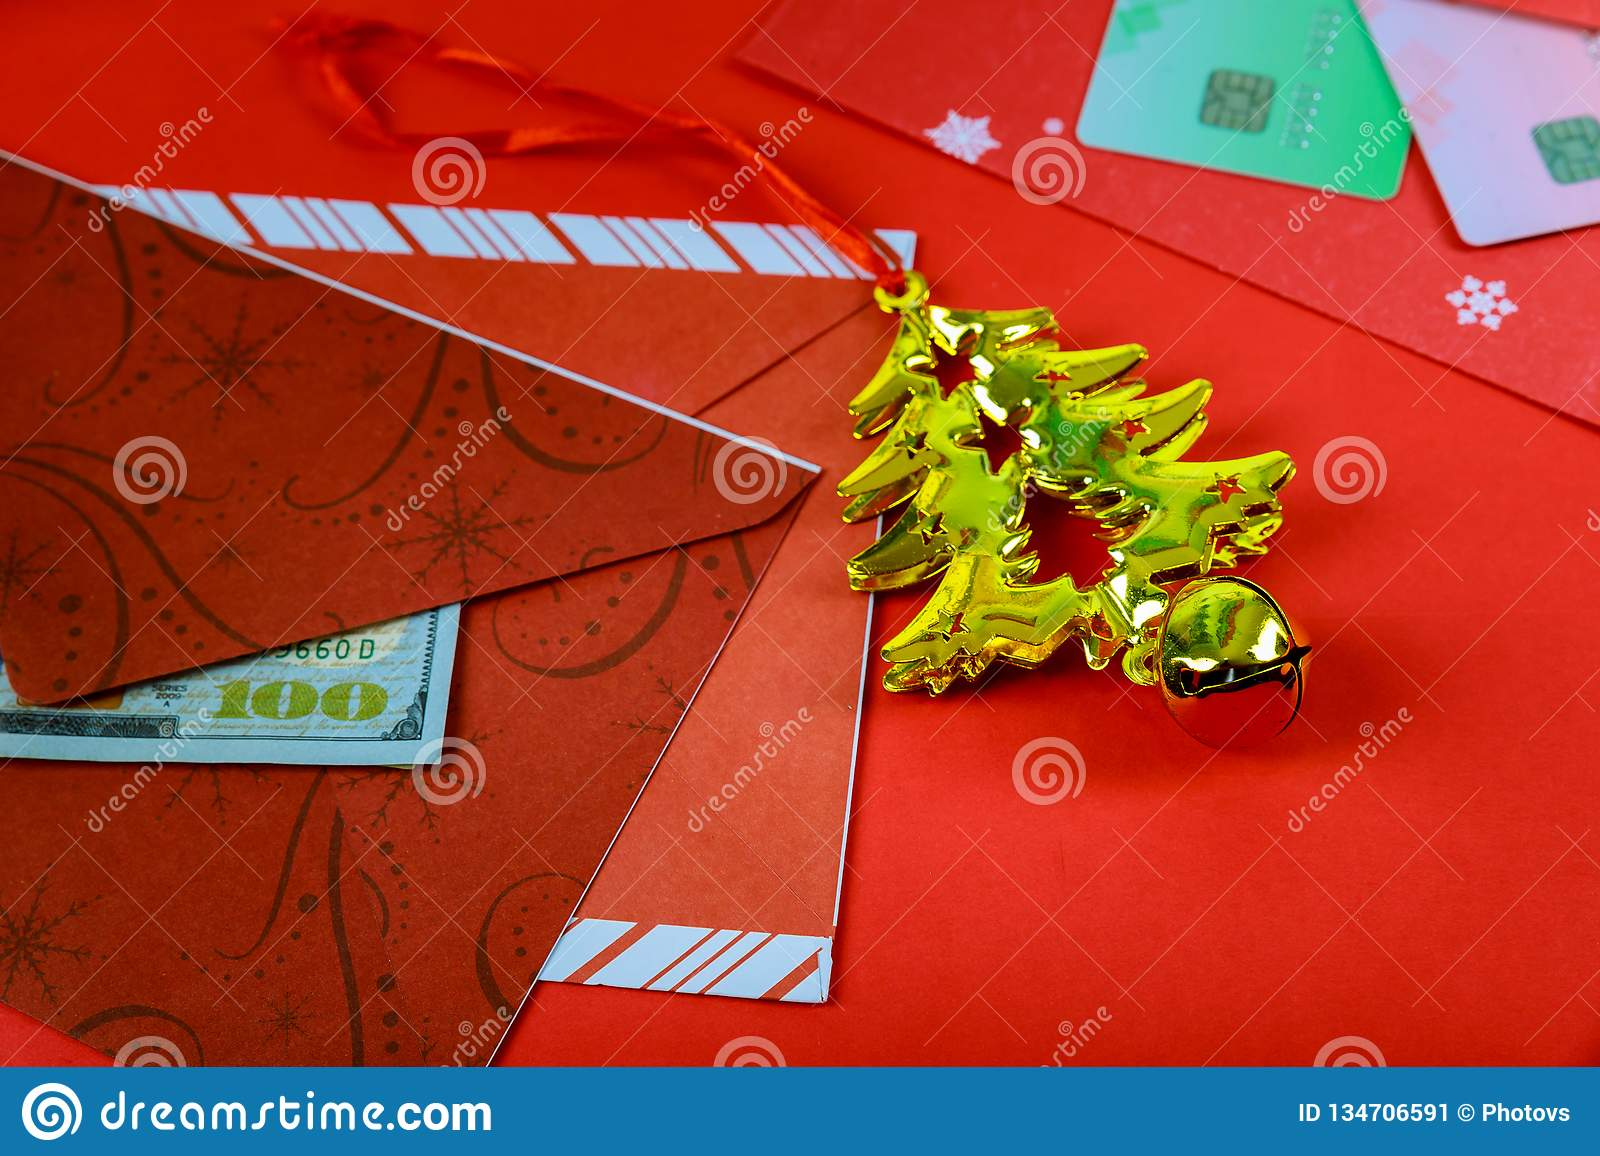 Red envelope with dollar for Chinese New Year bonus in red background,Happy Chinese new year concept